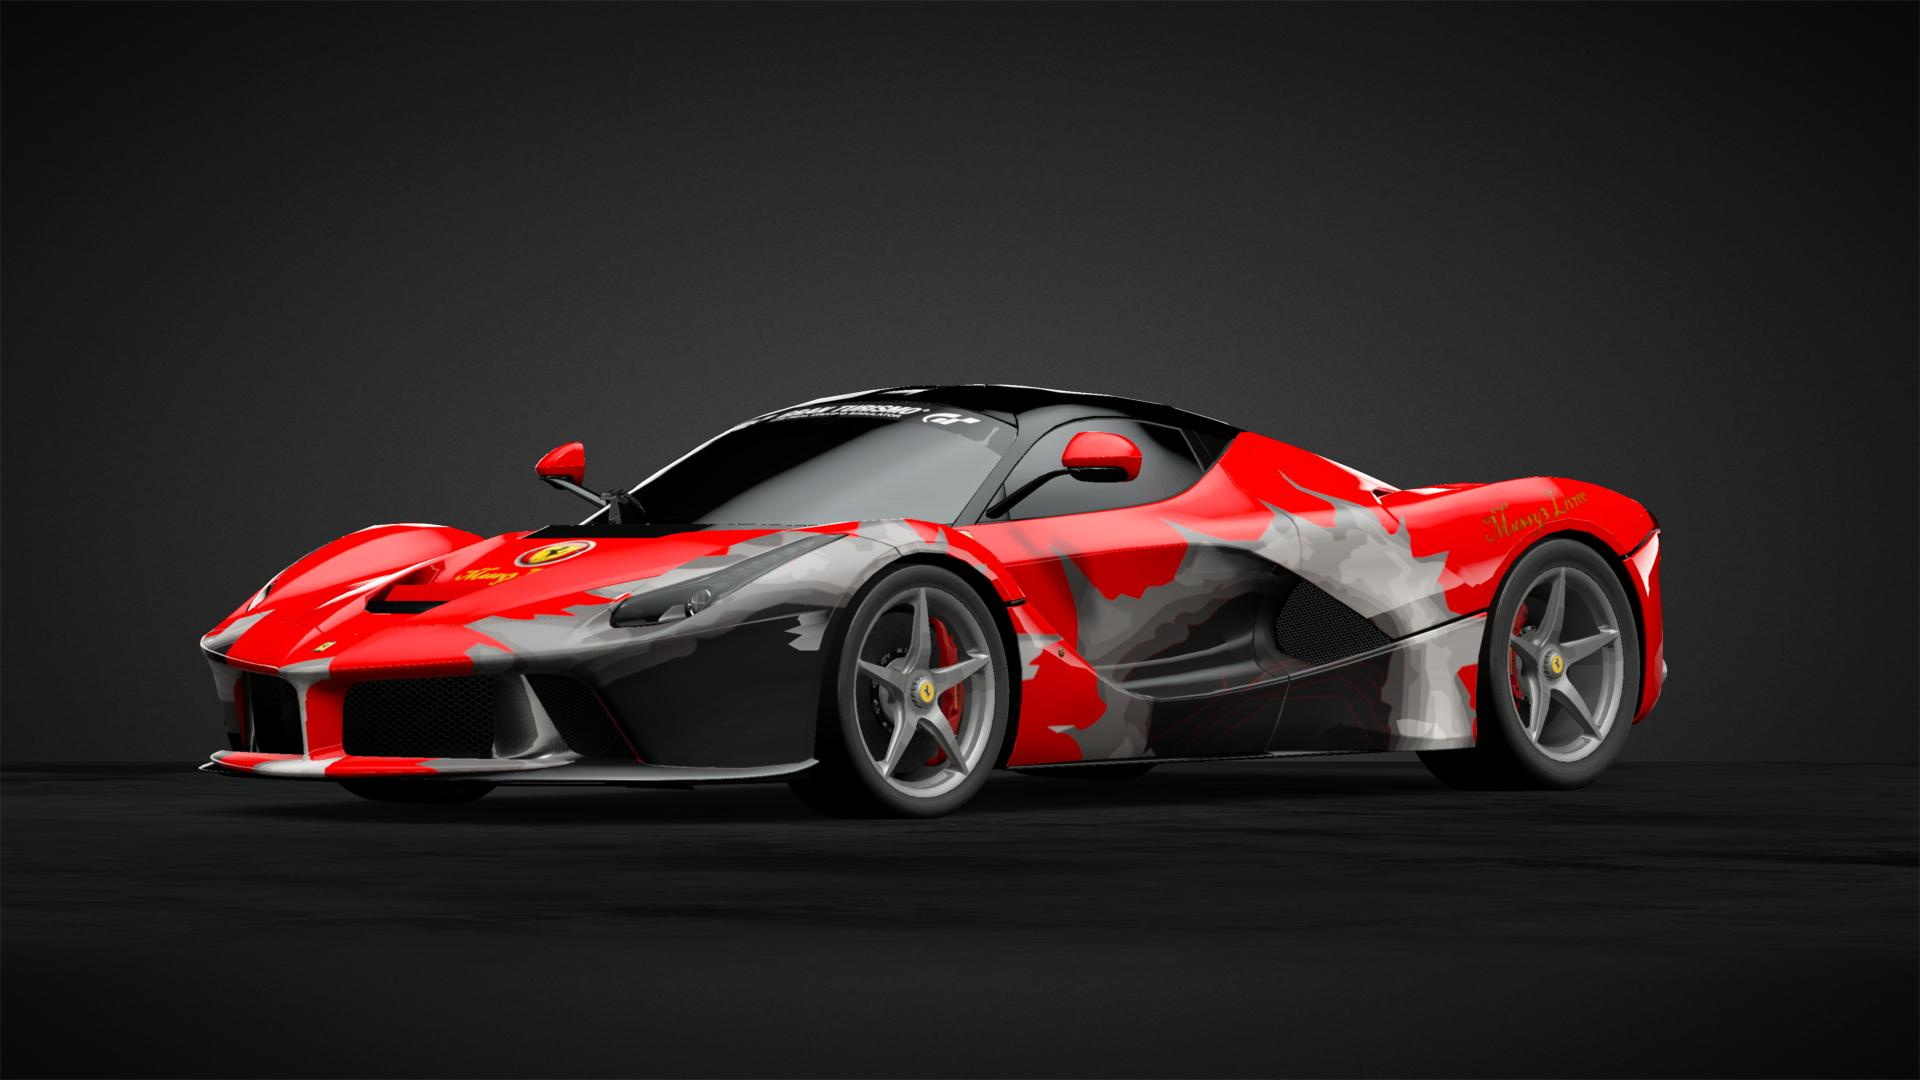 Arte Replay Mustang La Ferrari Problem Car Livery By Massy3 Community Gran